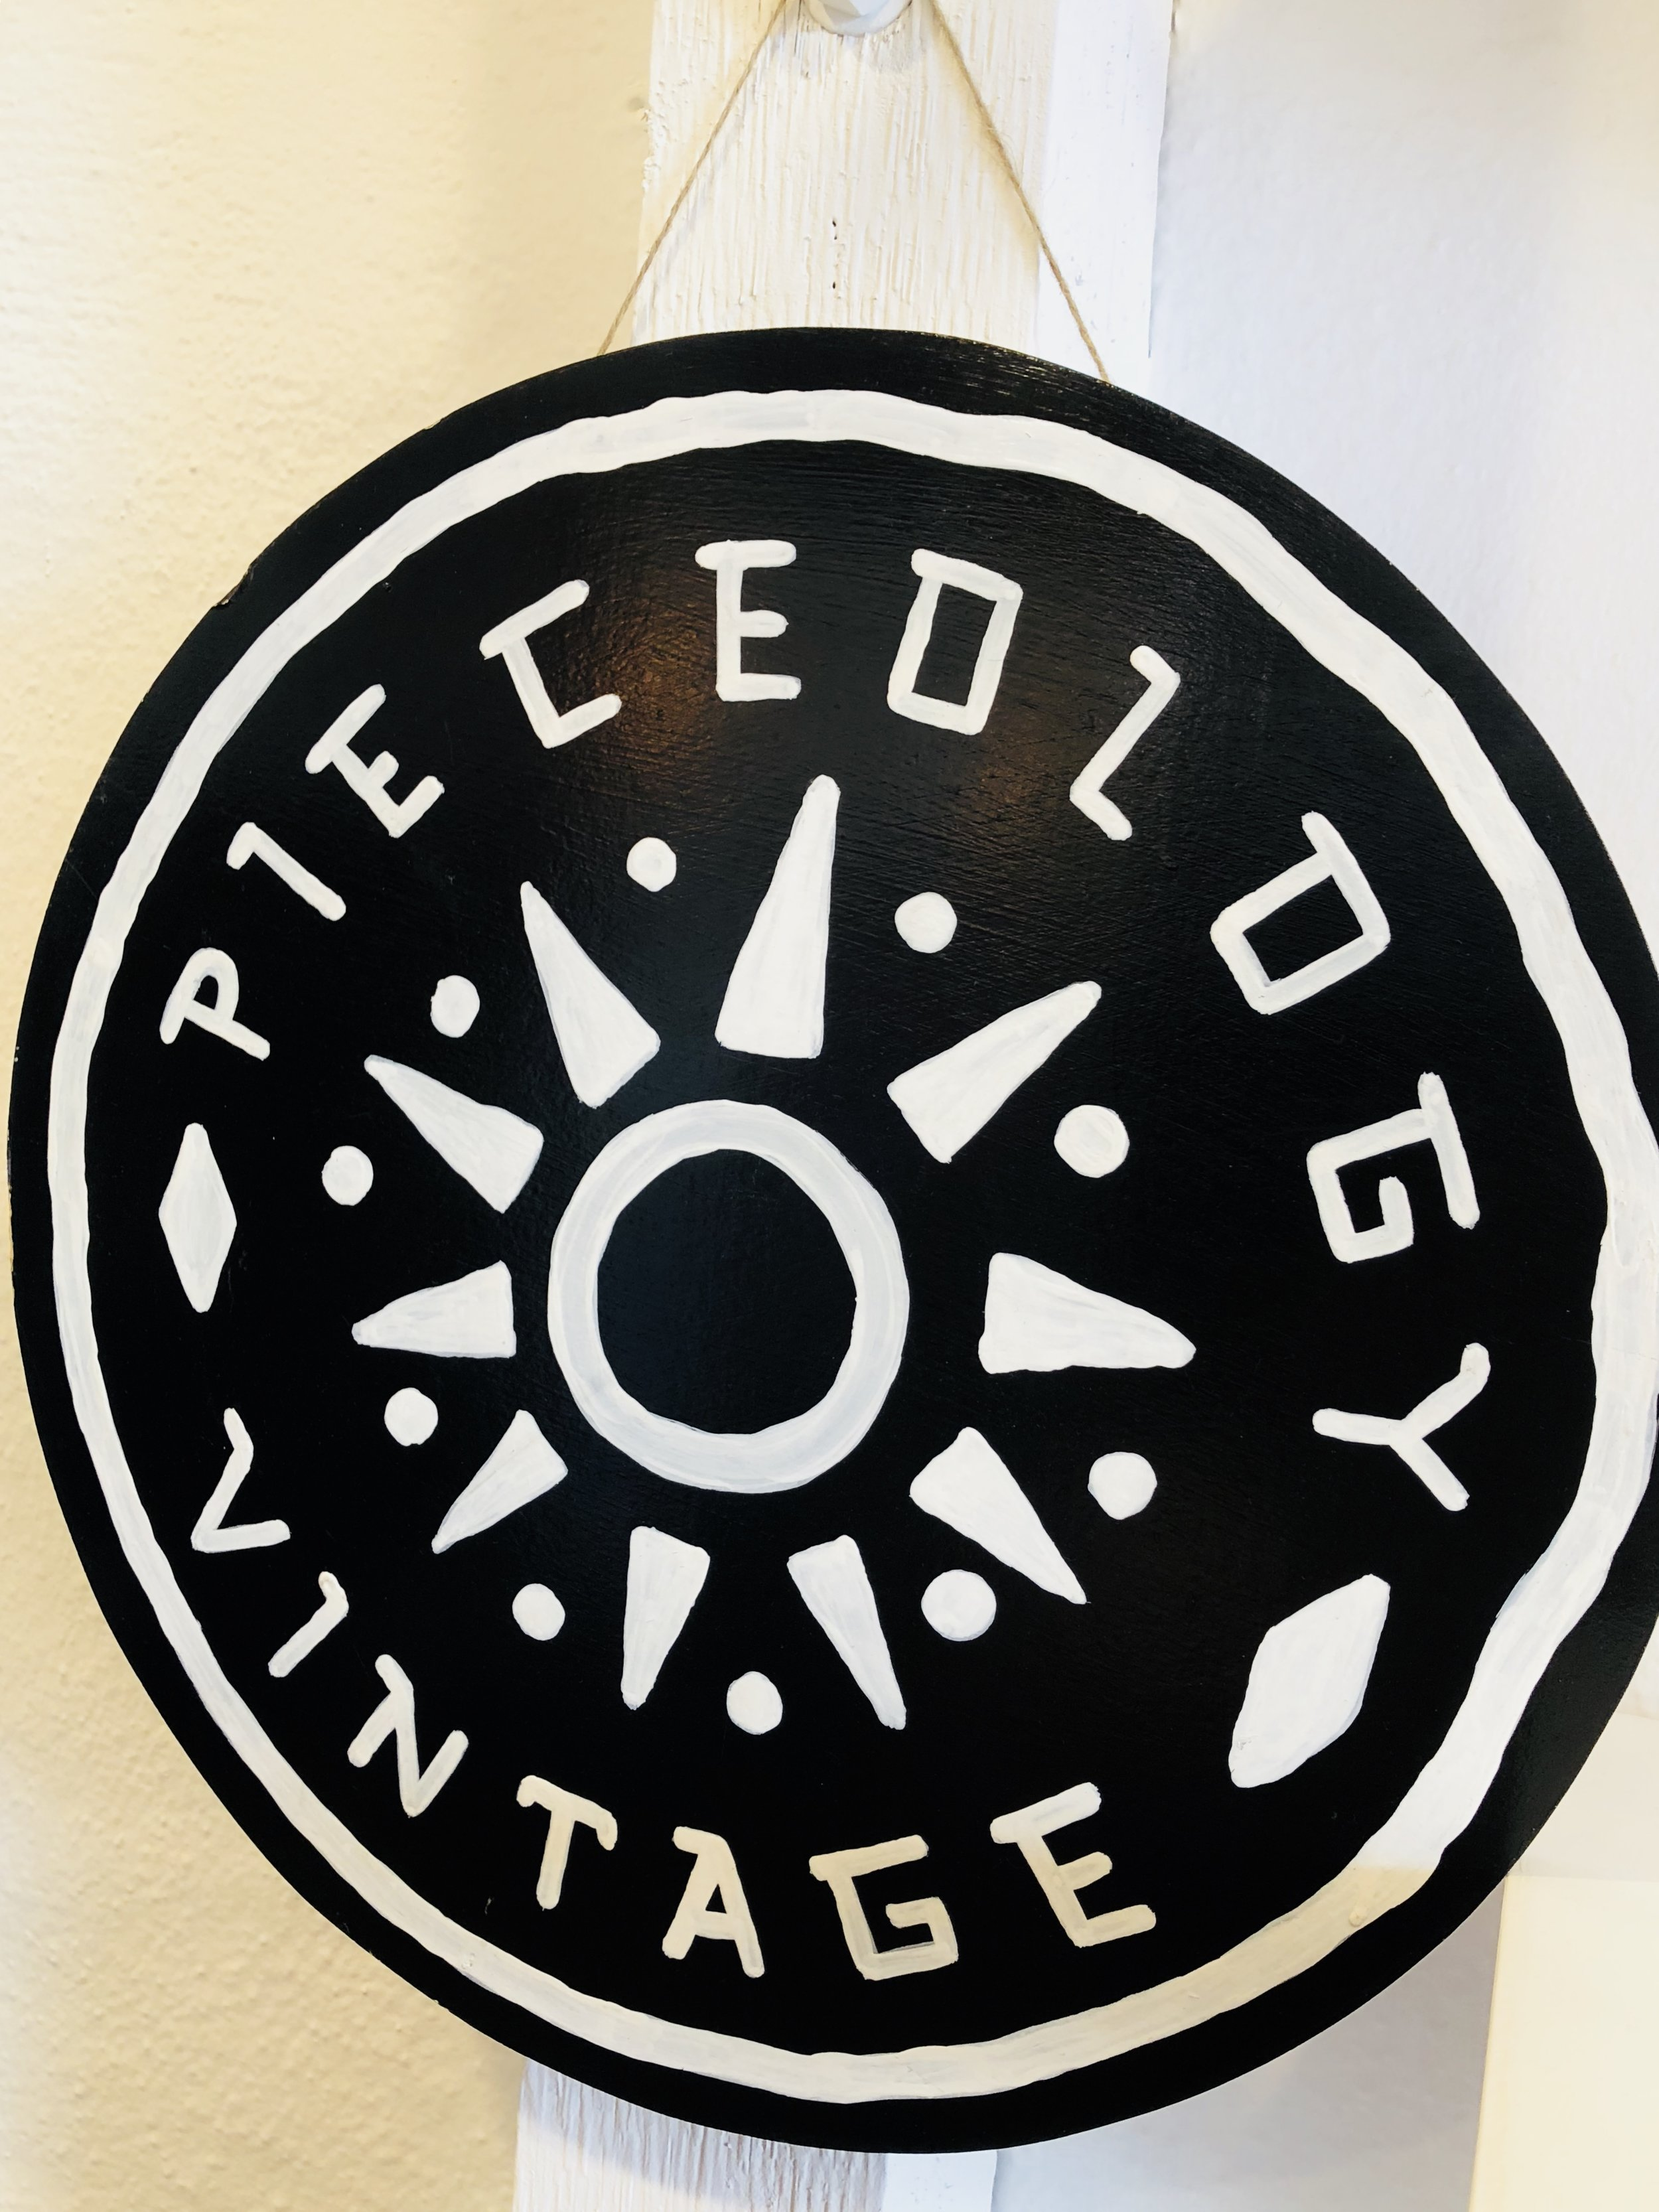 Pieceology is a vintage shop located in Austin, Texas.